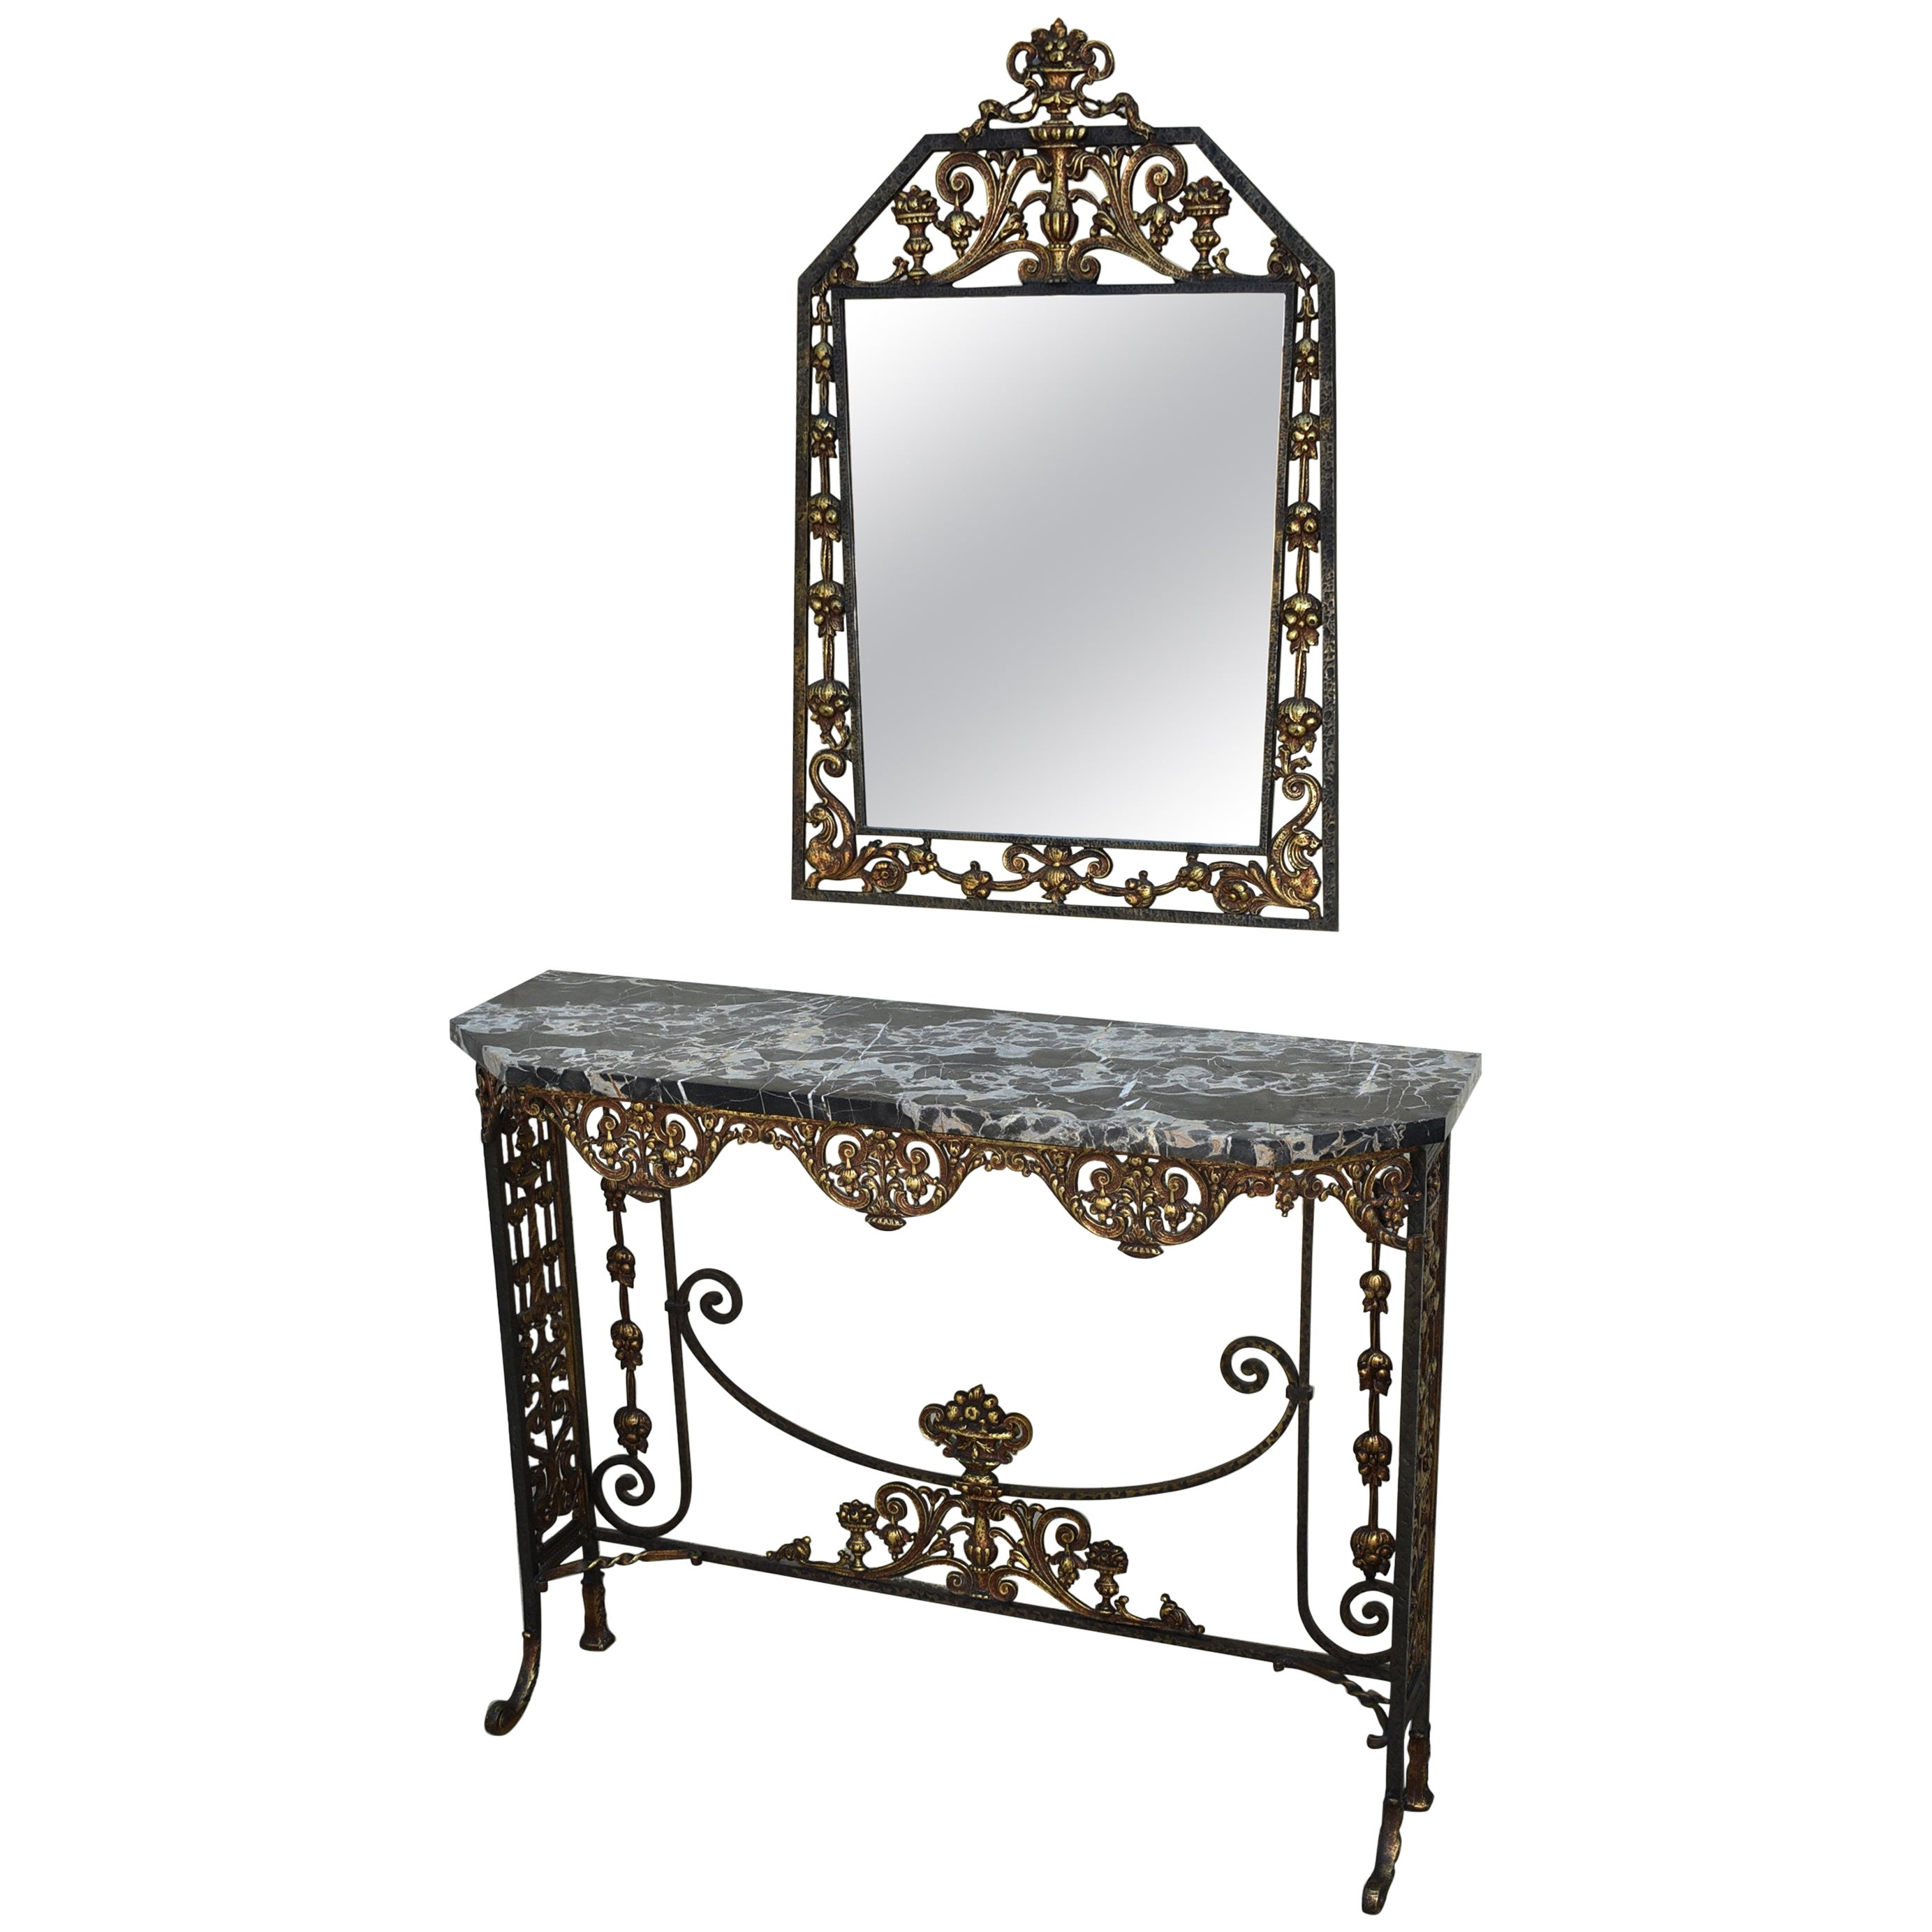 Iron and Bronze Hammered Console Entry Marble-Top Table with Mirror